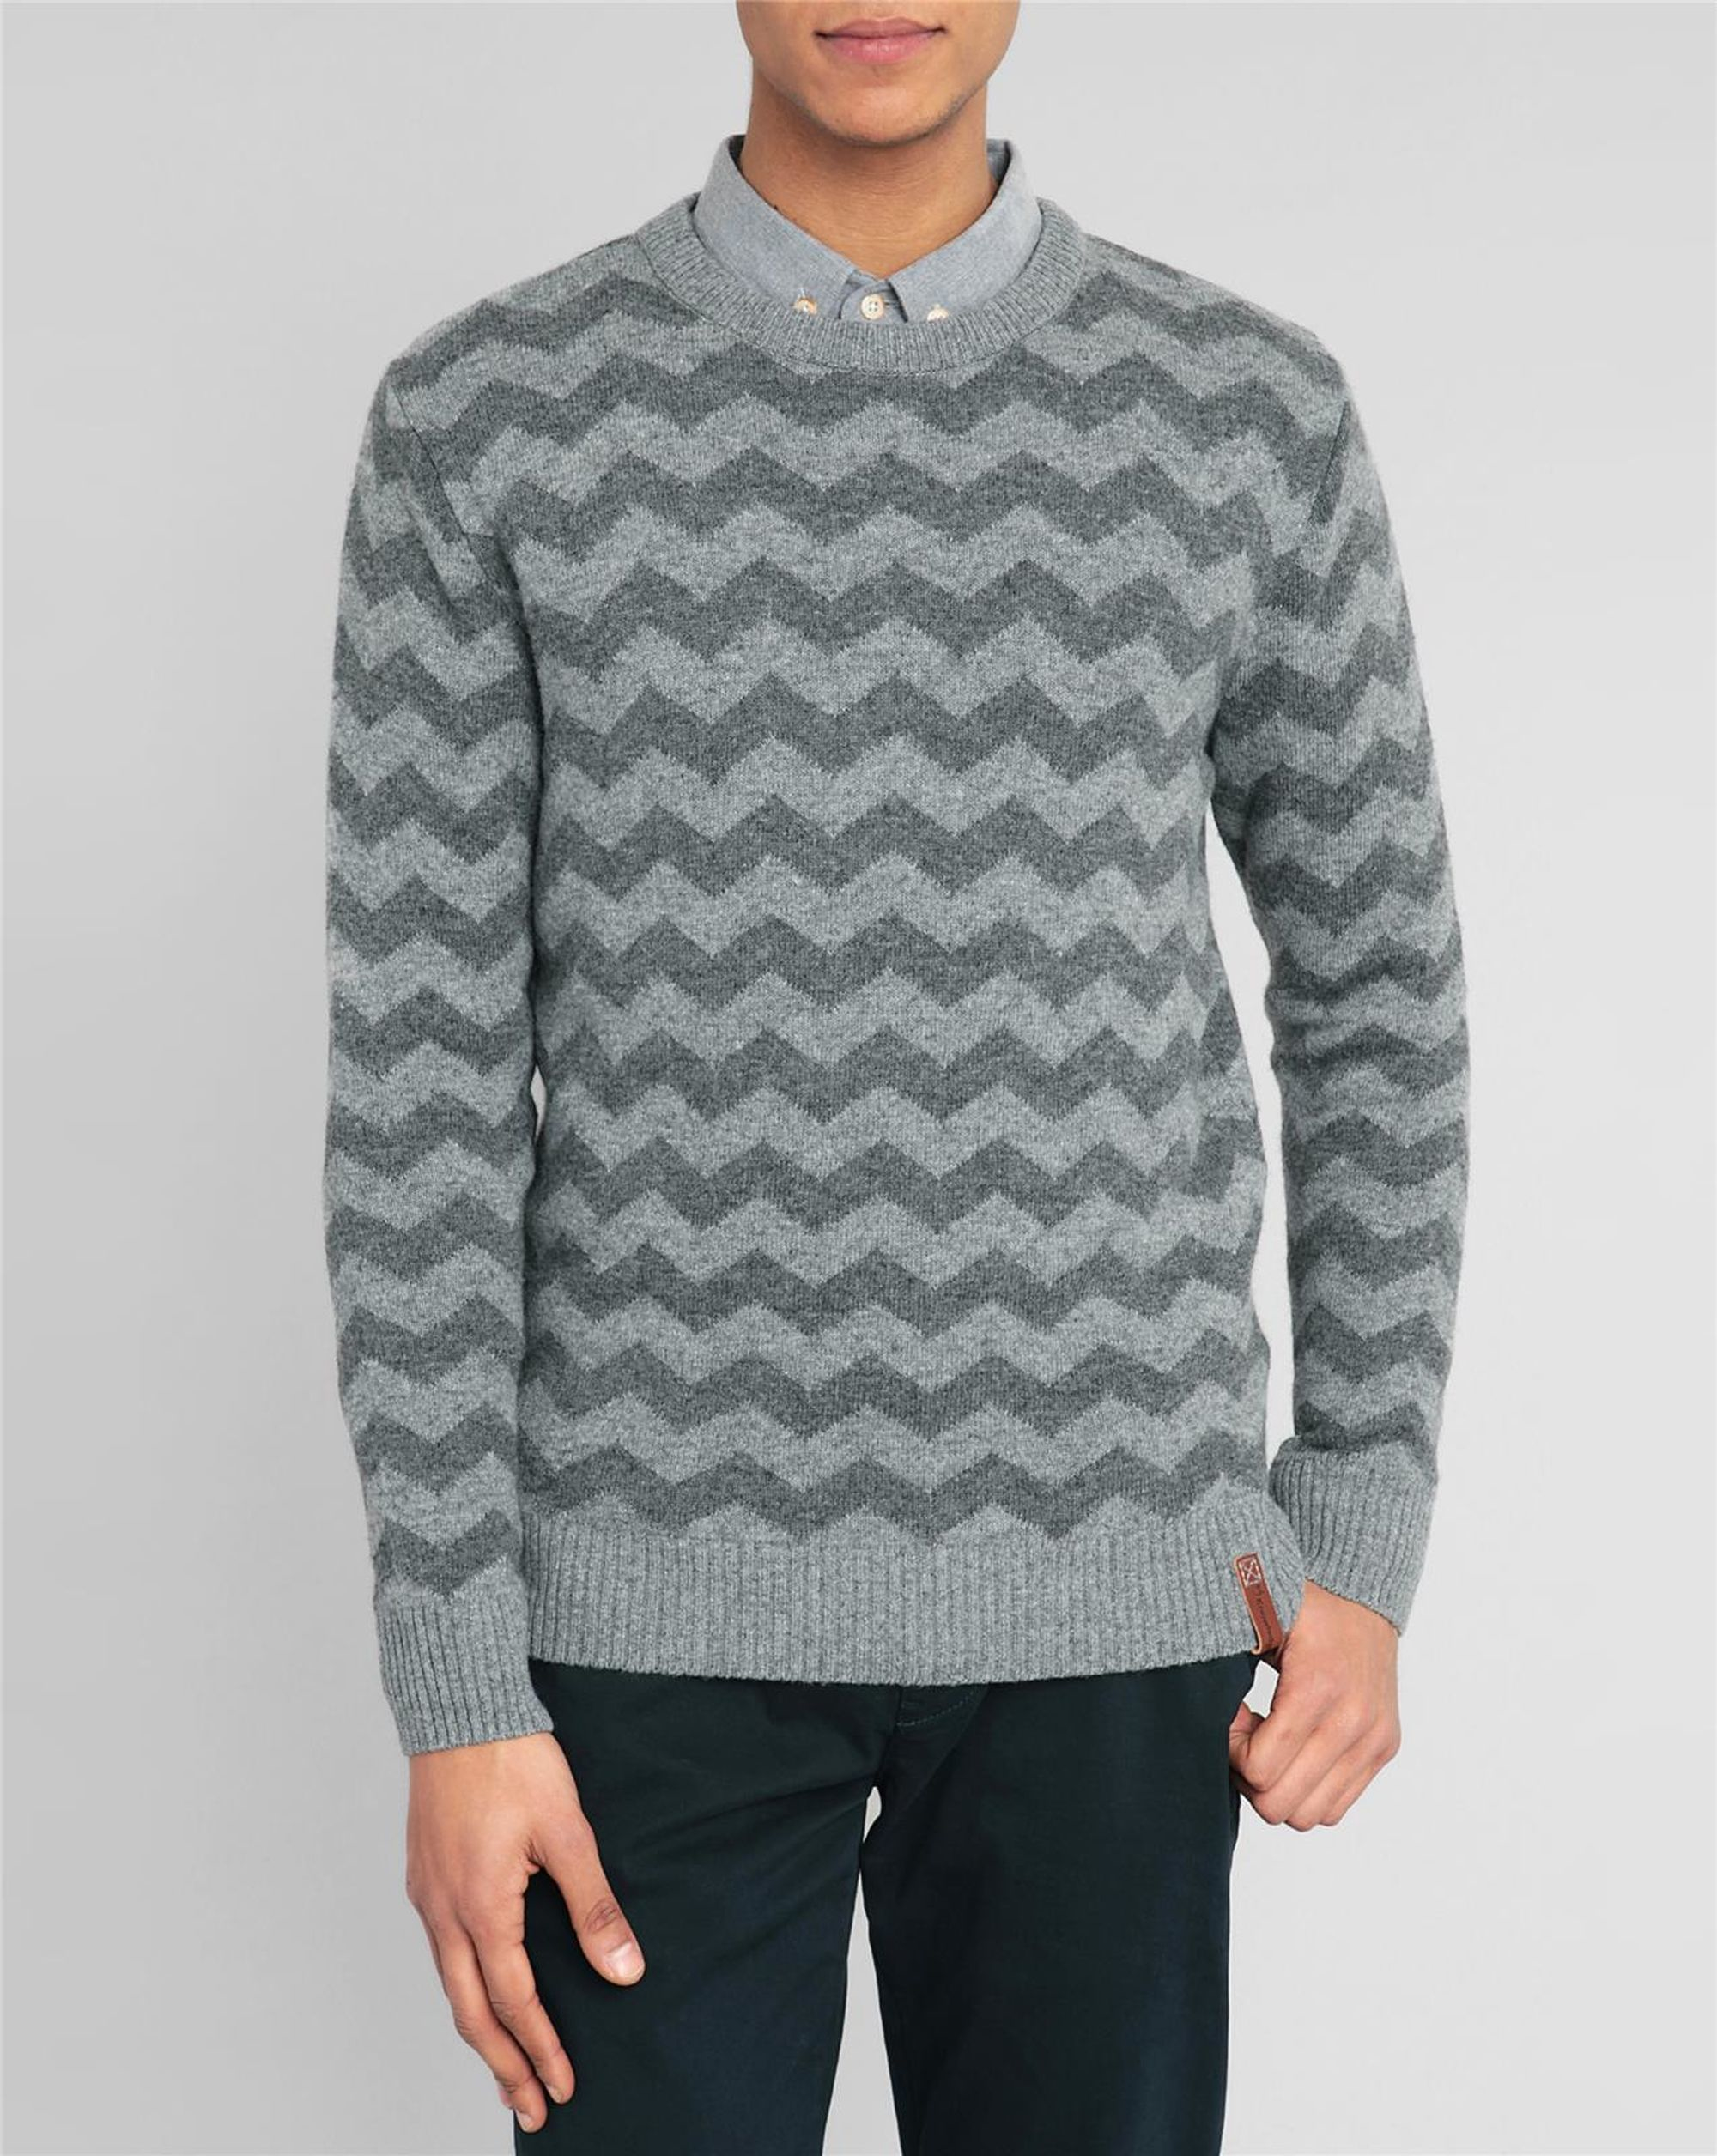 knowledge cotton apparel grey round neck zigzag sweater in gray for men lyst. Black Bedroom Furniture Sets. Home Design Ideas